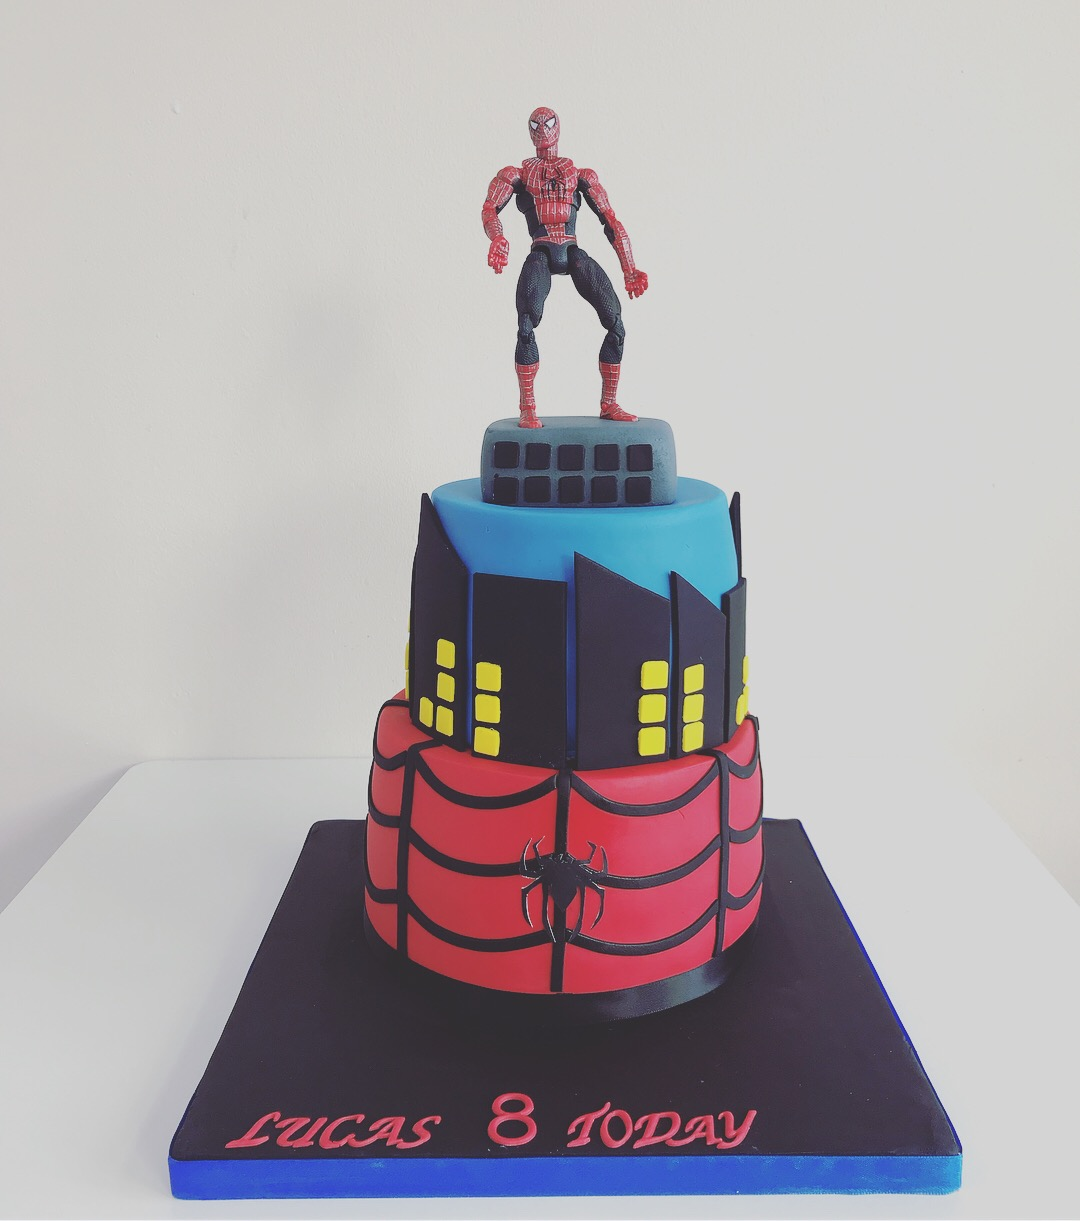 Astonishing Spider Man Childrens Birthday Cake Luscious Lovelies Cakes Personalised Birthday Cards Cominlily Jamesorg